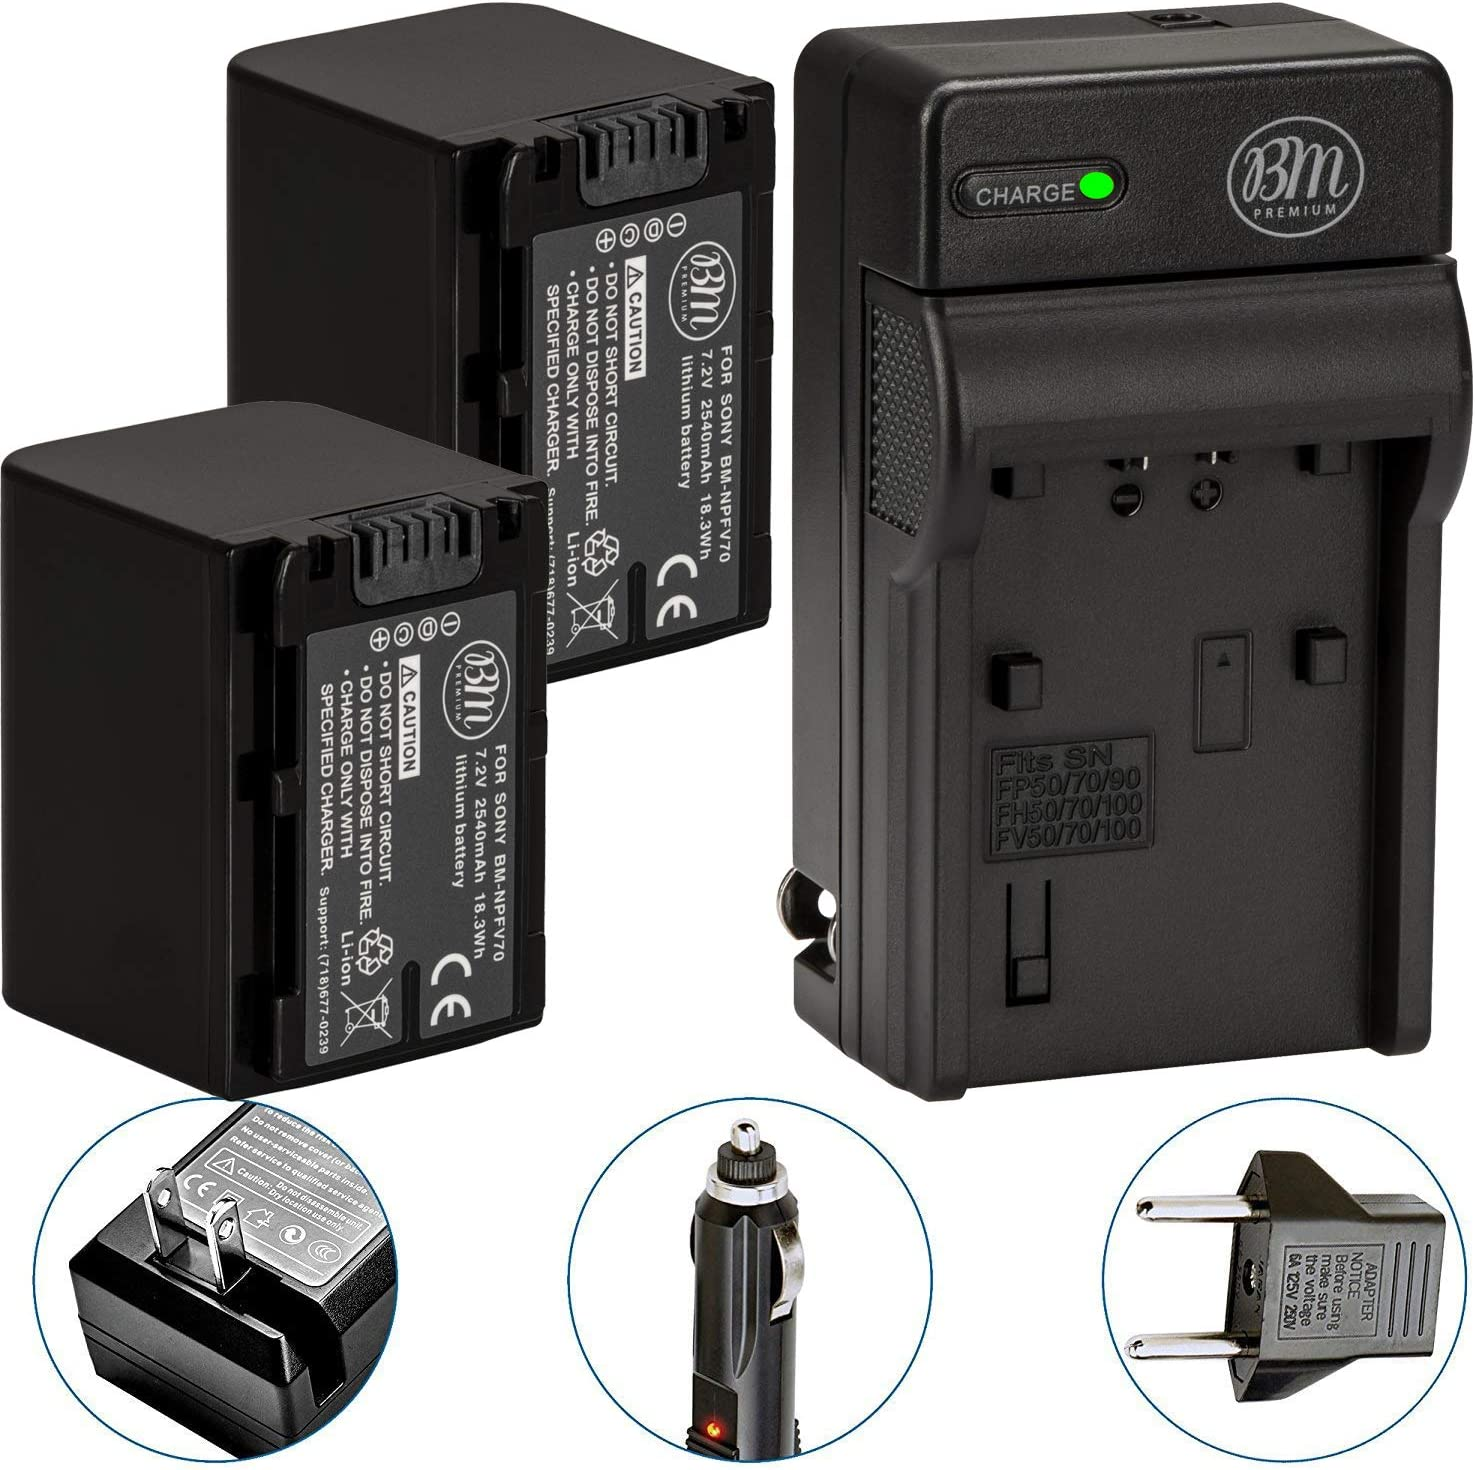 Pack Of 2 NP-FV70 Batteries & Battery Charger Kit for Sony HDR-CX190 HDR-CX200 HDR-CX210 HDR-CX220 HDR-CX230 HDR-CX260V HDR-CX290 HDR-CX380 HDR-CX430V HDR-CX580V HDR-CX760V HDR-PJ230 HDR-PJ380 HDR-PJ430V HDR-PJ580V HDR-PJ650V HDR-PJ710V HDR-PJ760V HDR-PV790V HDR-TD20V HDR-TD30V Handycam Camcorder + More!! : Camera & Photo